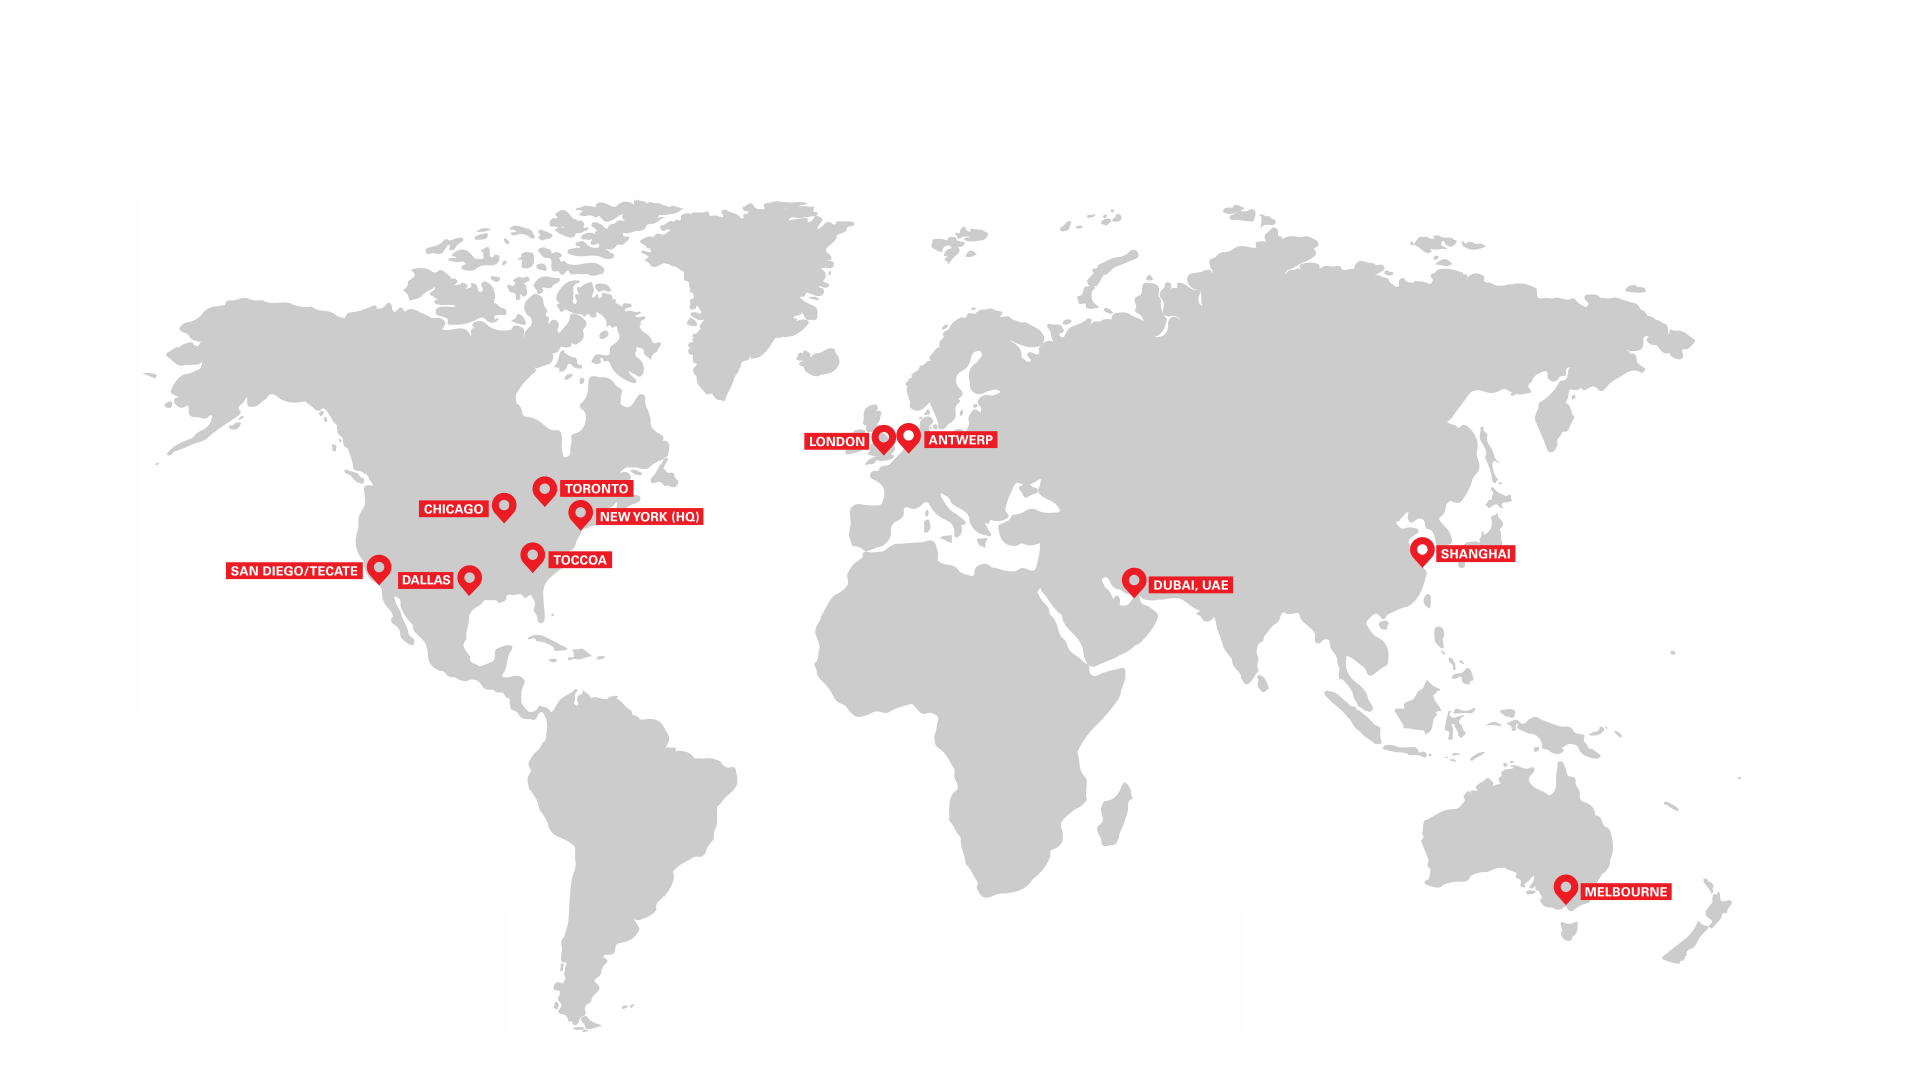 Map of ASI locations